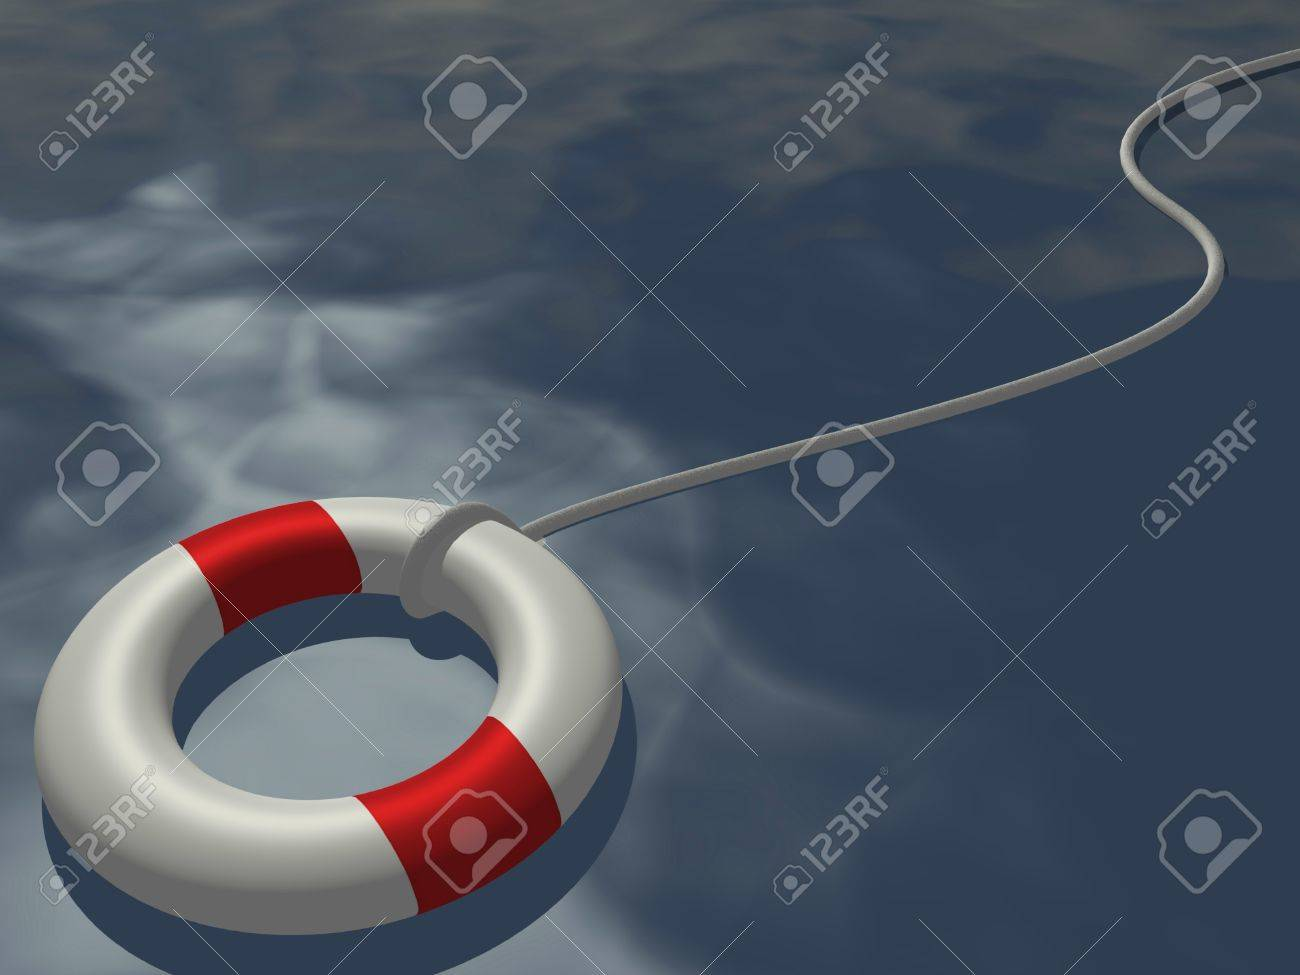 Image of a life preserver floating on a blue ocean. - 10470594